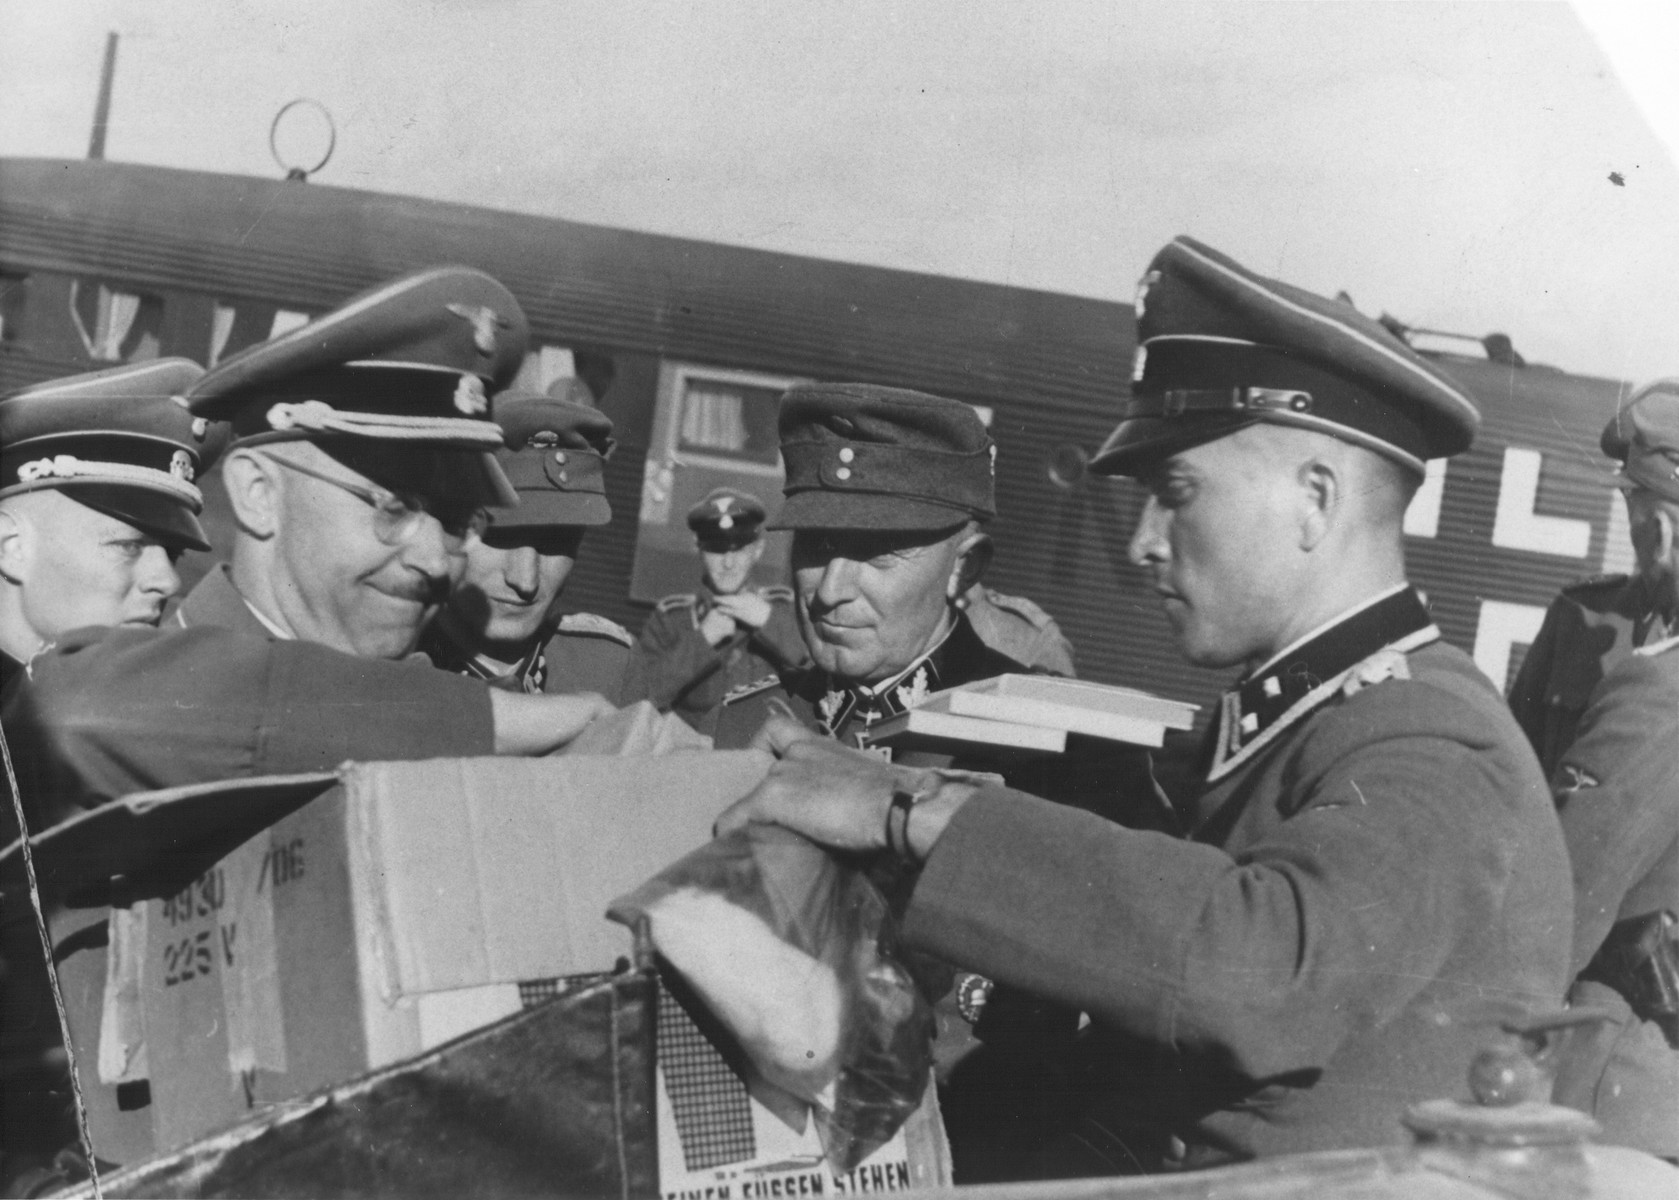 Reichsfuehrer-SS Heinrich Himmler pulls items out of a cardboard box at an airfield in the Karelia region of Finland.  Among those pictured is SS-Sturmbannfuehrer Werner Grothmann on the far left.  Pictured second from the right is Matthias Kleinheisterkamp.   Matthias Kleinheisterkamp was an SS-Brigadeführer at the time the photo was taken He is wearing the Knight's Cross of the Iron Cross beneath his collar which he received in early 1942, in connection with his leadership of the SS Das Reich Panzer division on the Eastern Front.